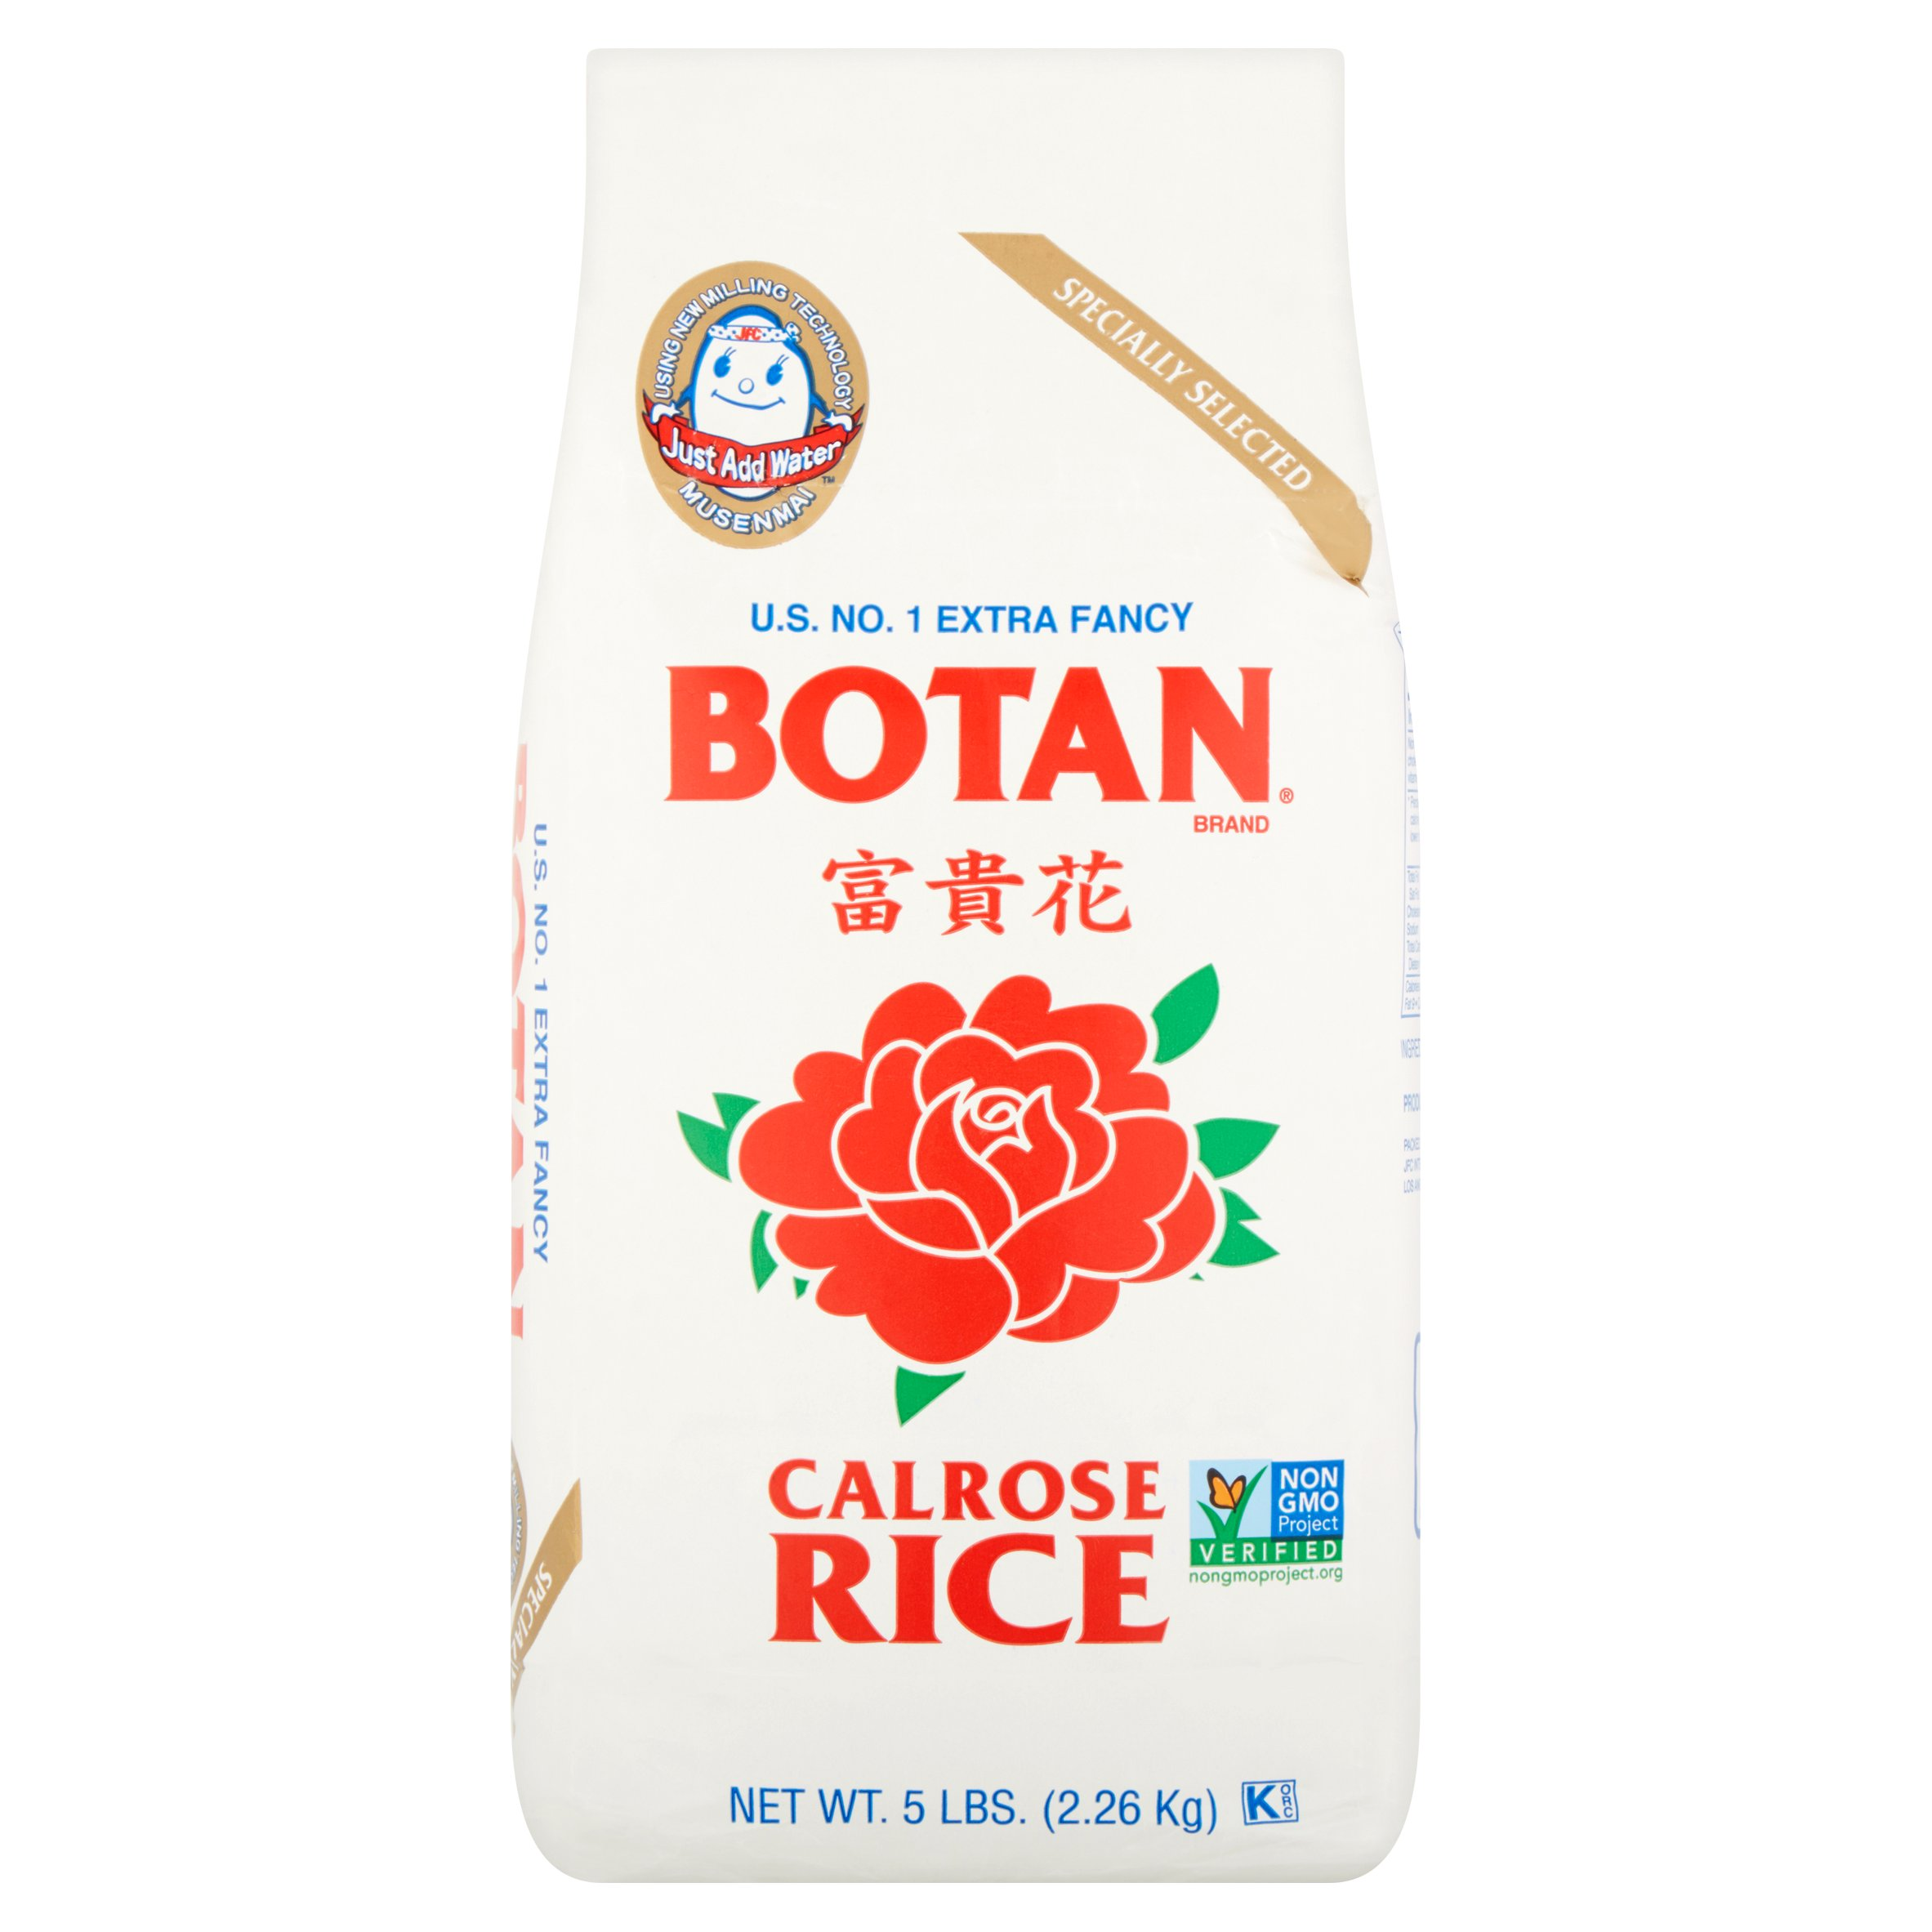 Botan Calrose Rice Extra Fancy, 5.0 LB by Jfc International Inc.